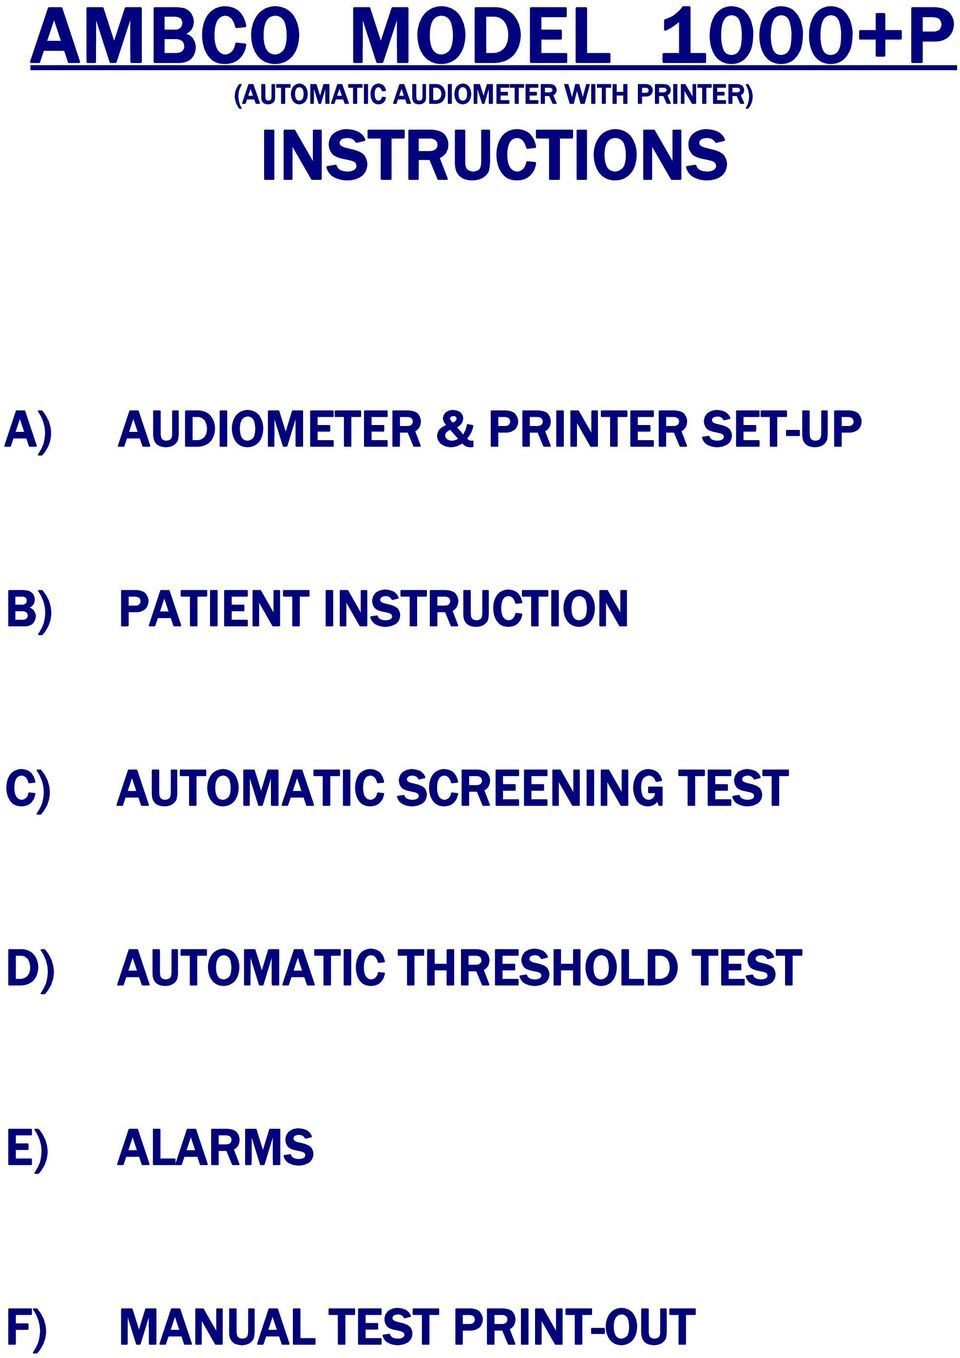 B) PATIENT INSTRUCTION C) AUTOMATIC SCREENING TEST